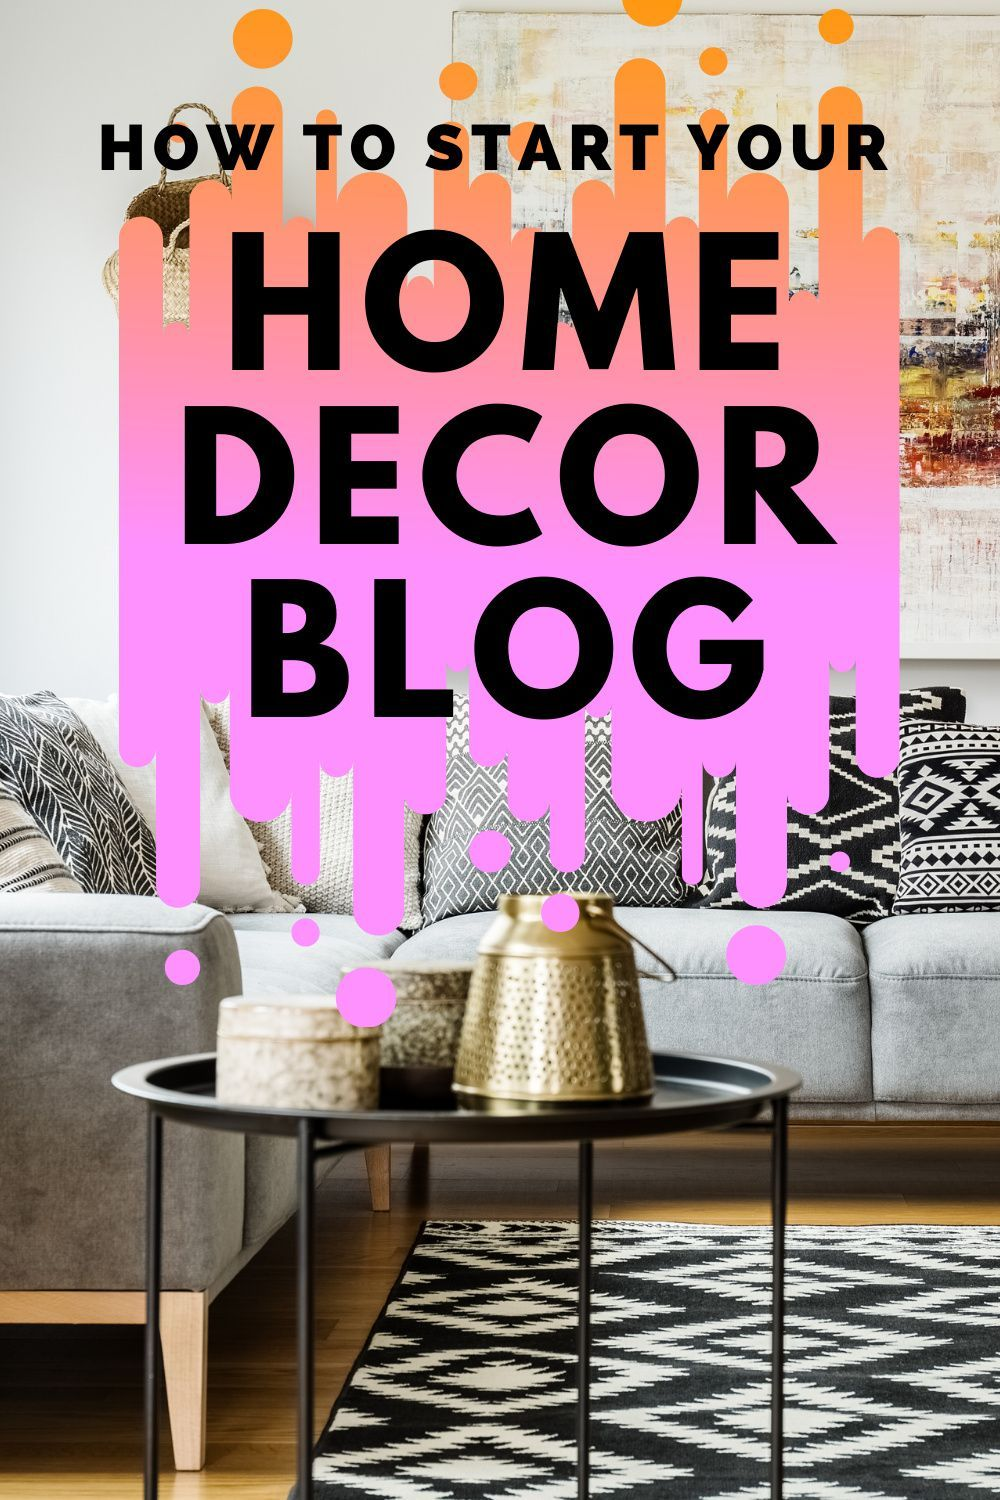 Starting a home decorating blog has been one of the most rewarding decisions I've ever made. It drives traffic to my online shop, helps me find like-minded people online, and is an amazing creative outlet. Blogging also came with a lot of learning on the job. Frankly, a lot more than I ever expected. Here's what you need to know if you're thinking about starting a home decor blog. #homedecorblog #homedecorblogging #homedecorblogger #startablog #blogging #blogger